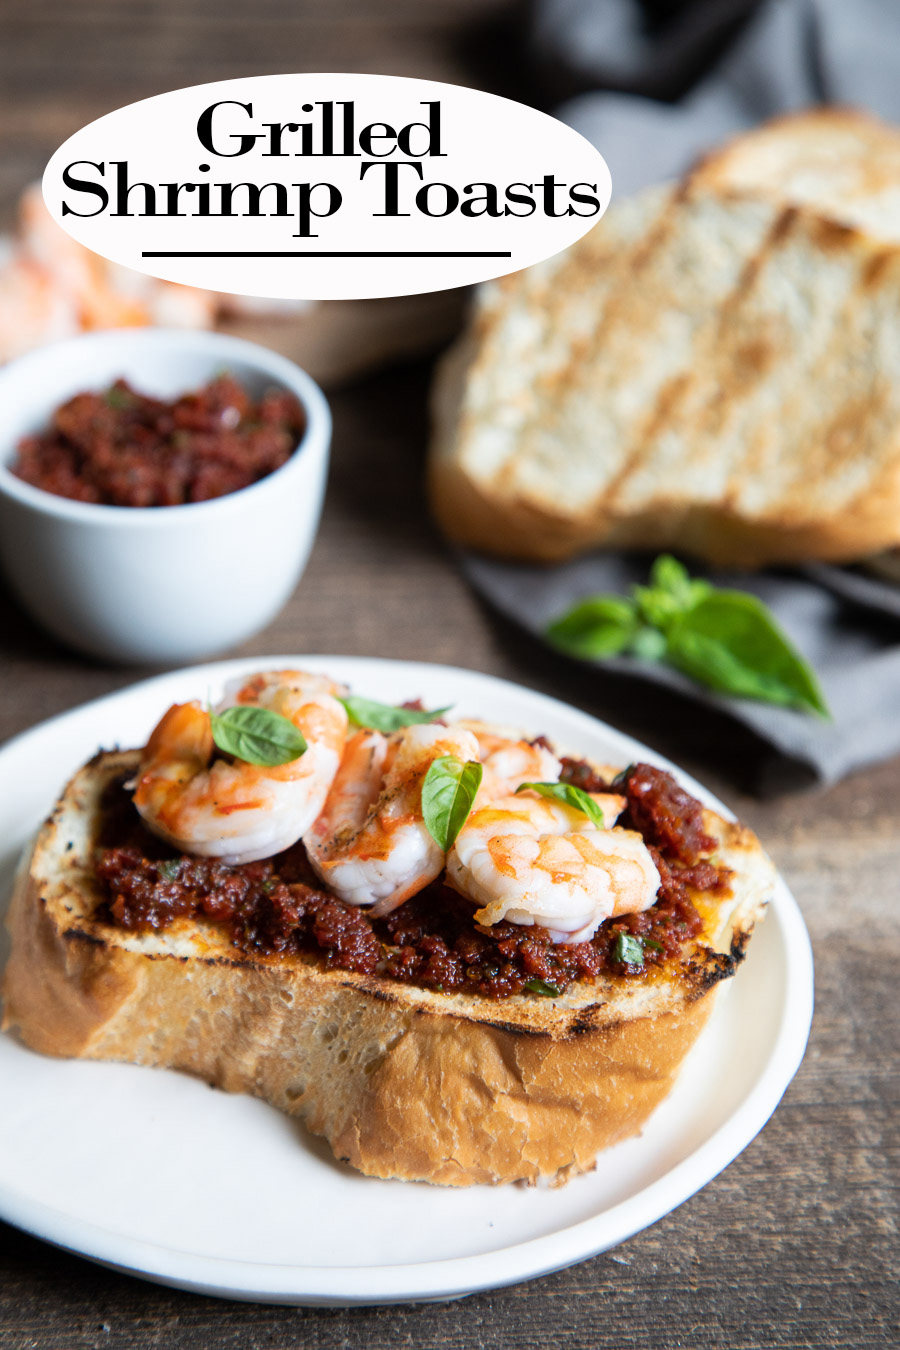 Grilled Shrimp Toast. This easy summer recipe can be made with fresh or cooked shrimp on your indoor grill or out on the bbq! Extra flavor comes from the sun dried tomato spread! #dinner #bbq #shrimp #bread #grilled #recipes